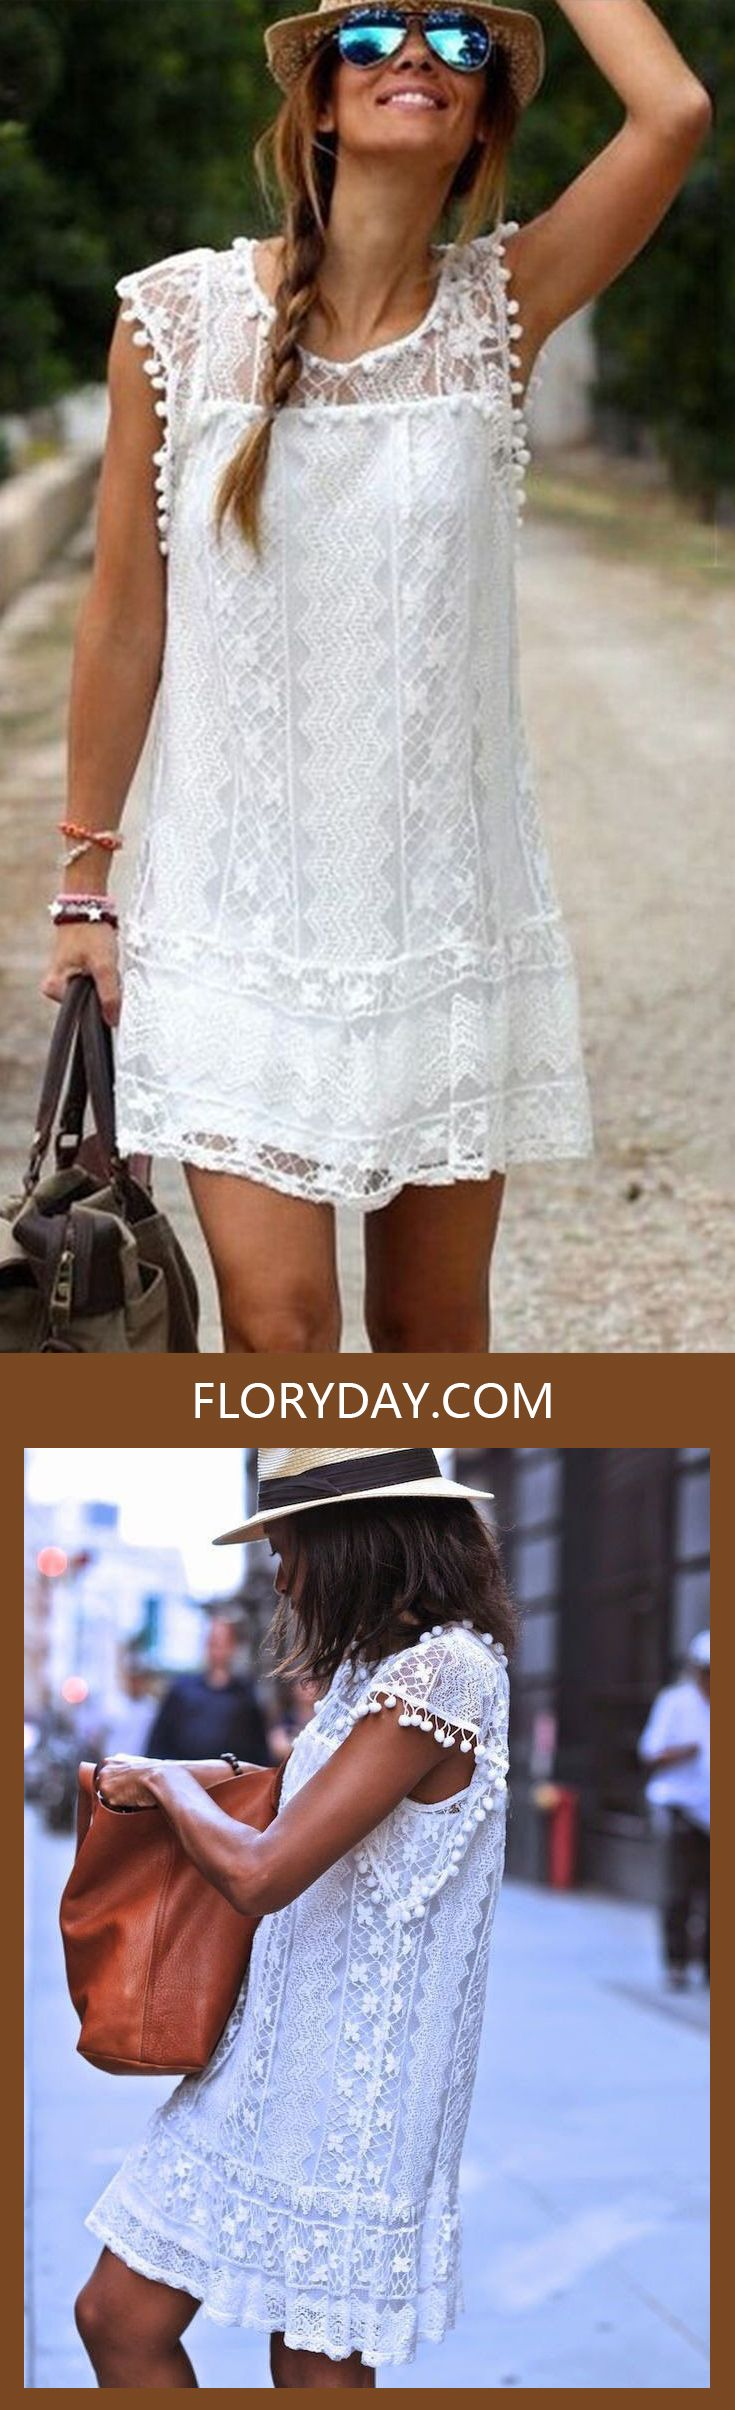 Searching for pretty lace dresses? Don't you love this pure-white lace dress?! I think it made my day, with my beautiful glass!  Find lace dresses in red, pink, cream, white, black & other colors as well as in short & long styles at floryday.com!